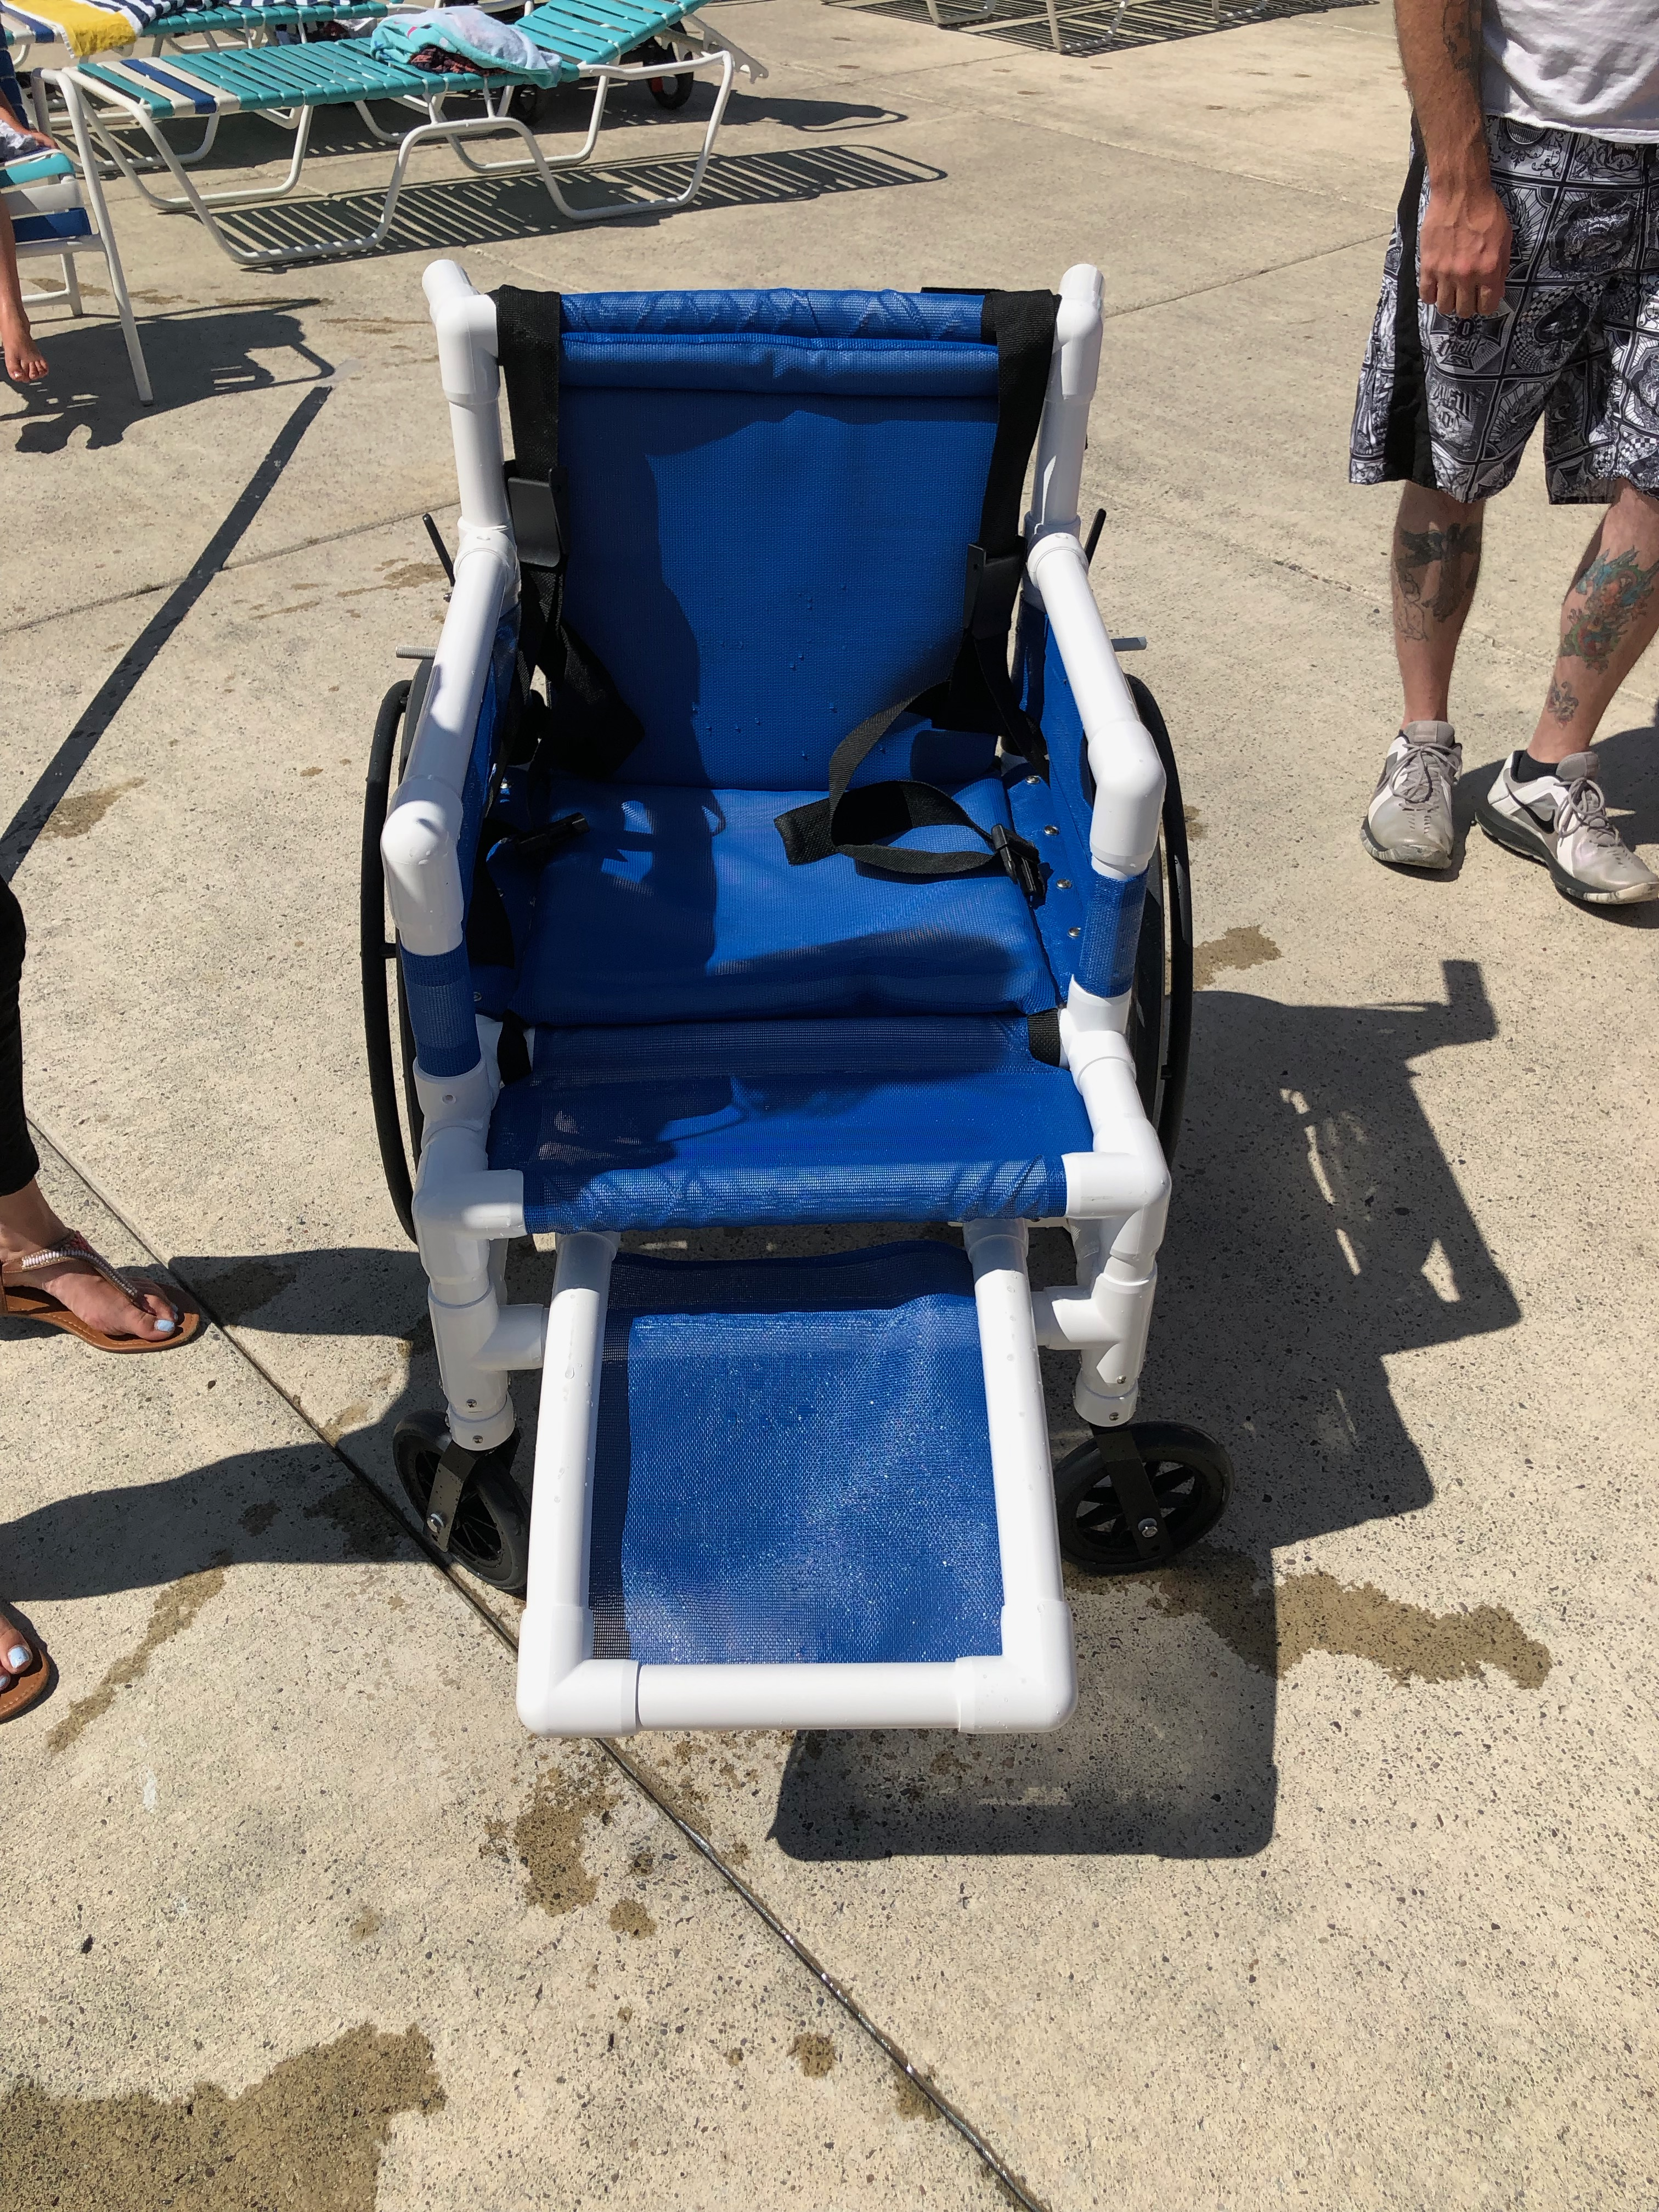 Aquatic wheelchair with removable foot rest